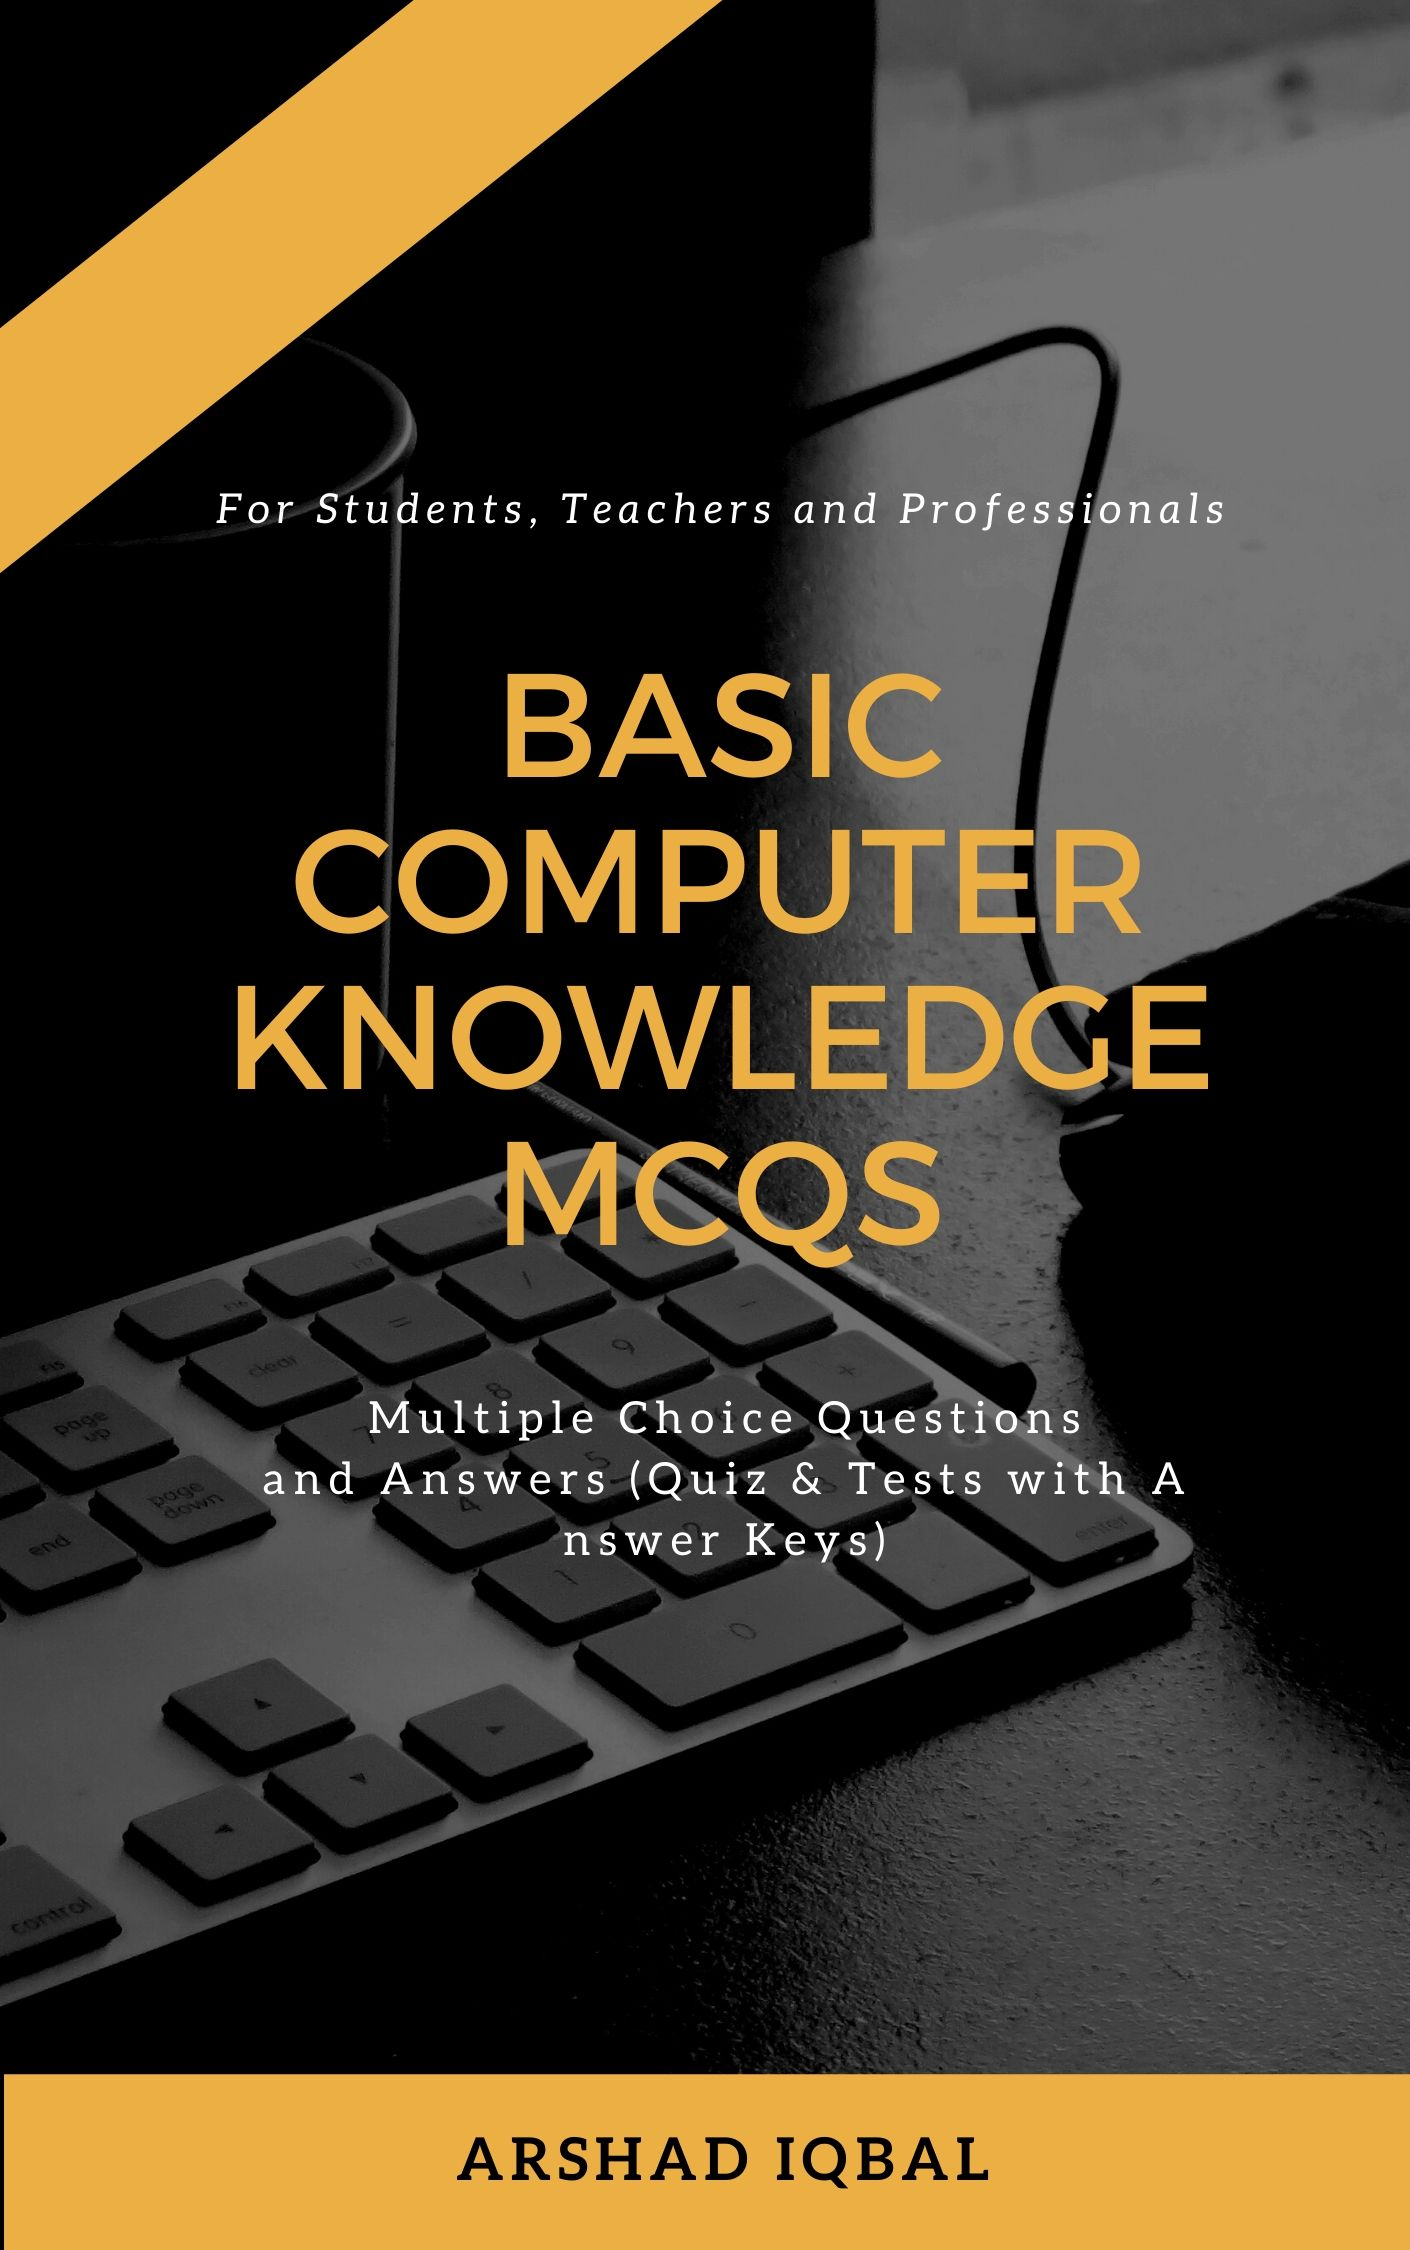 Basic Computer Knowledge MCQs: Multiple Choice Questions and Answers (Quiz & Tests with Answer Keys)